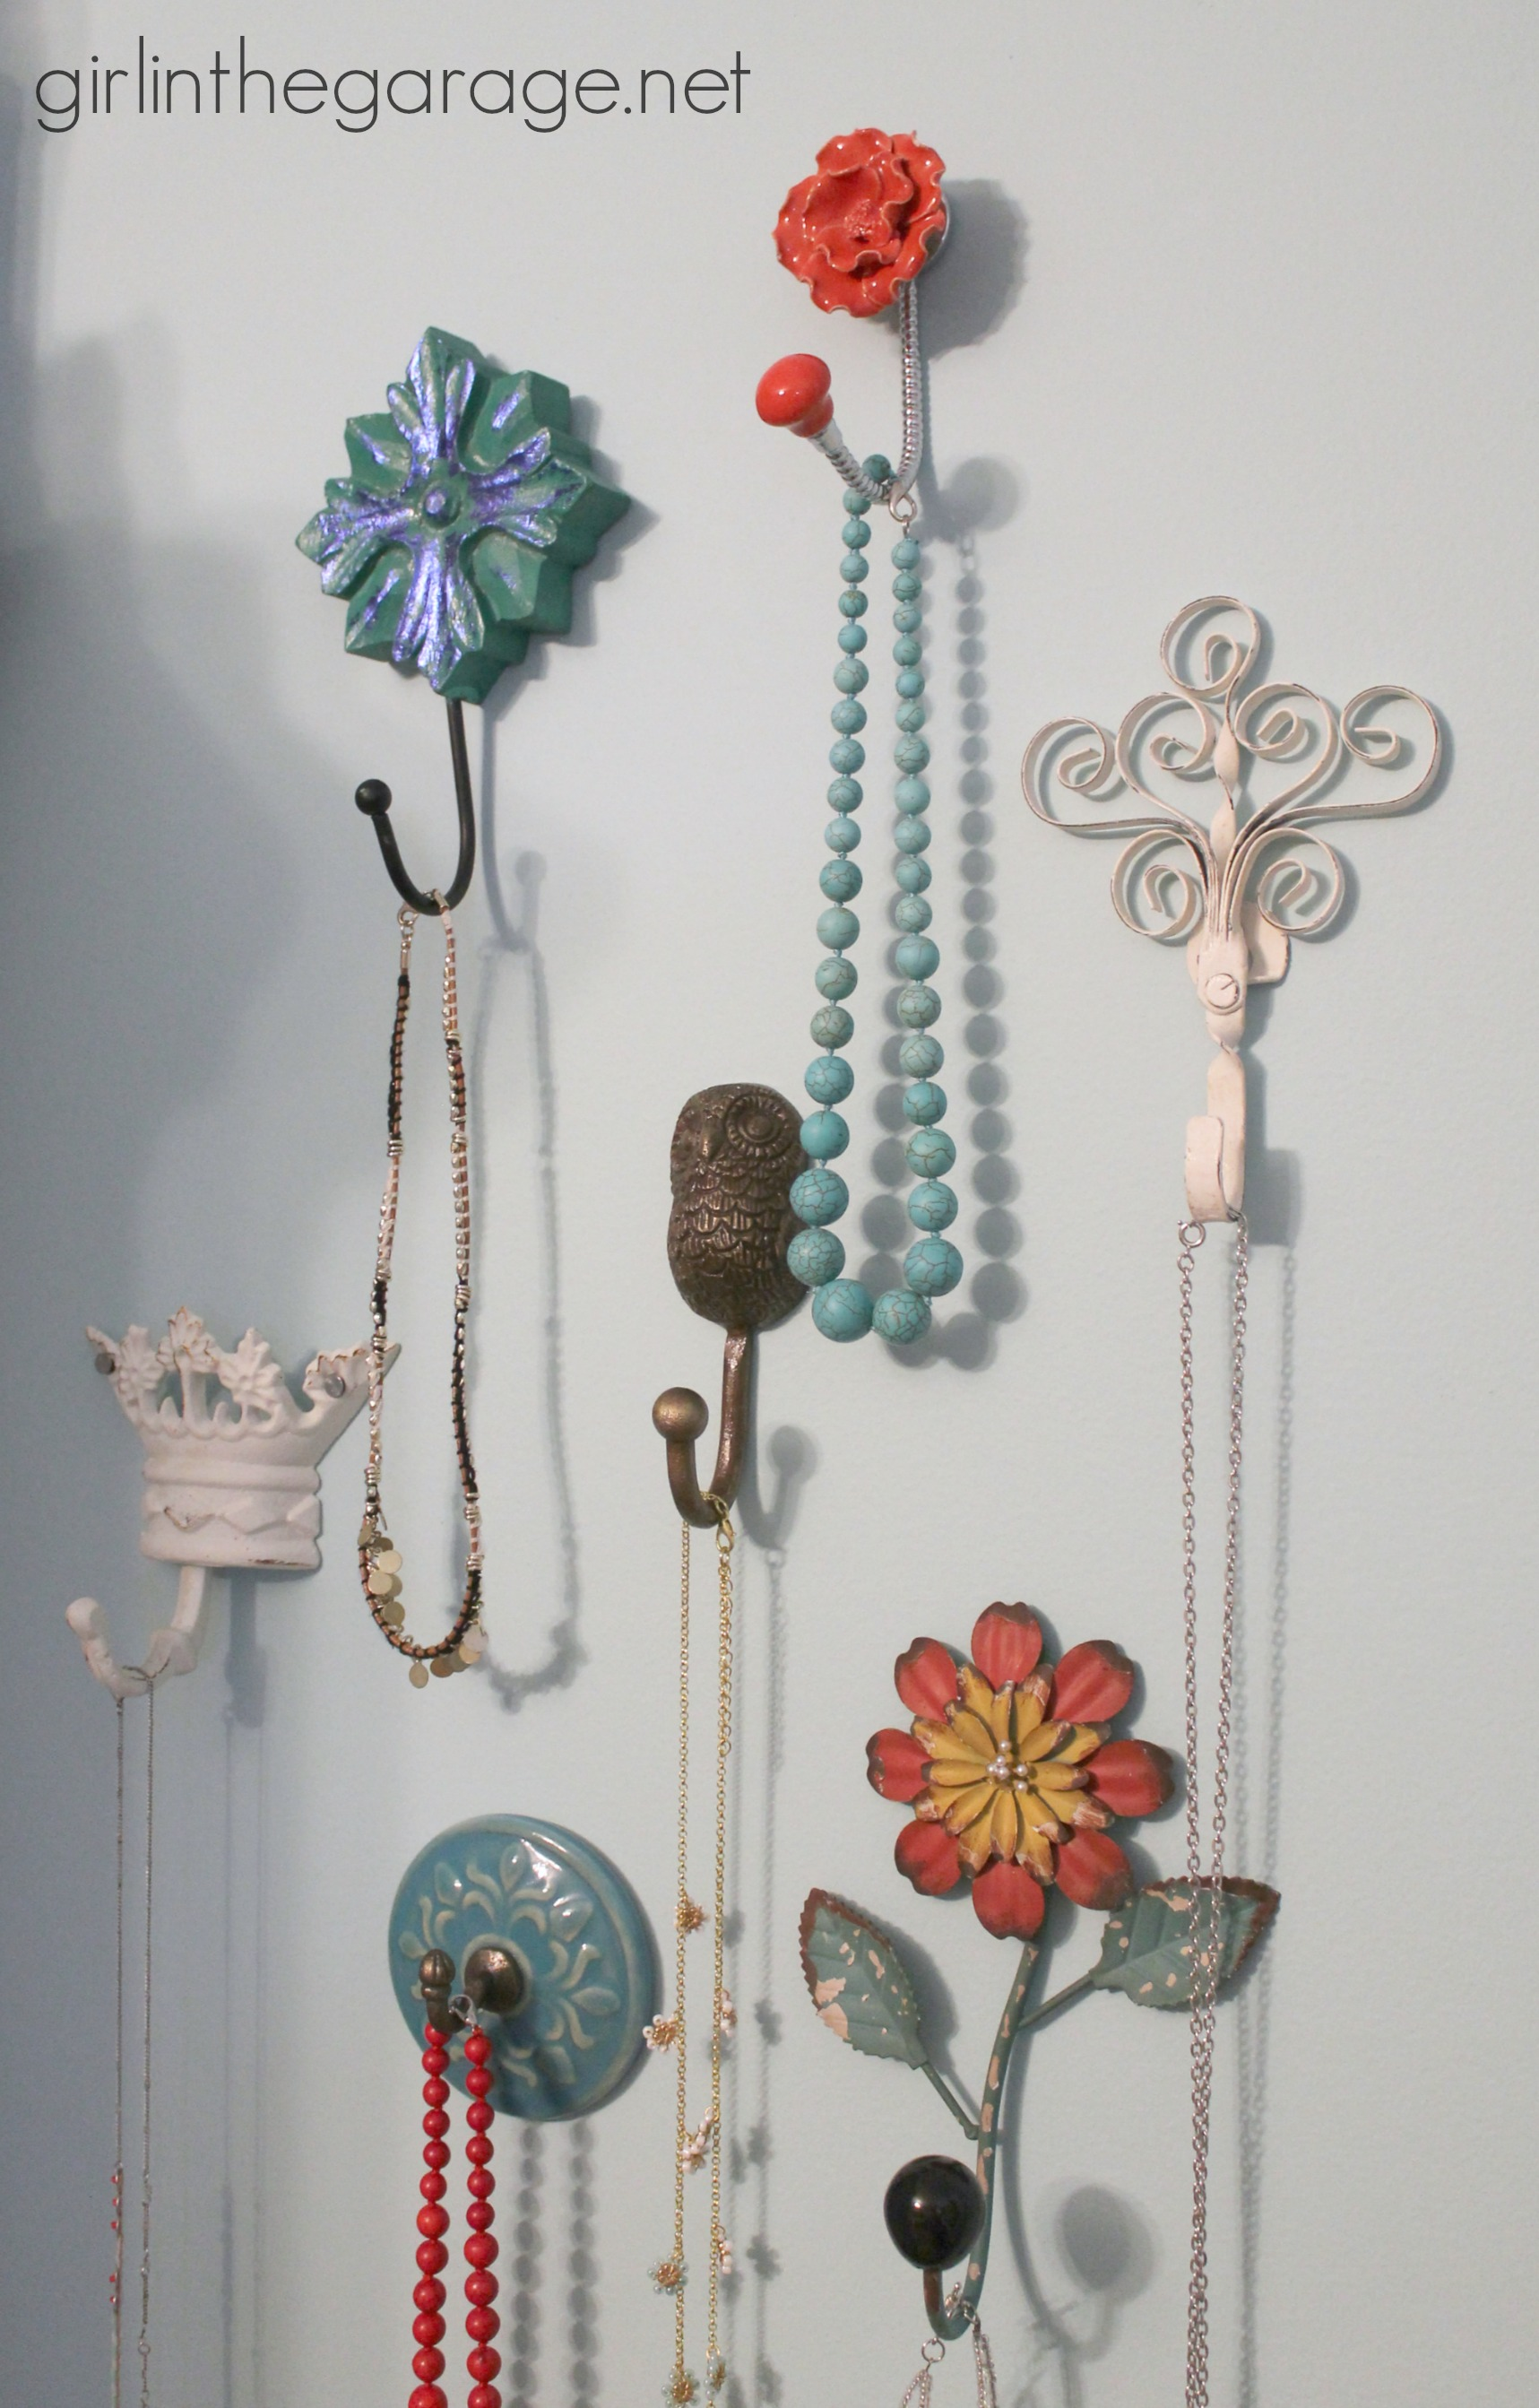 Best Decorative Wall Hooks As Jewelry Storage Girl In The Garage® This Month